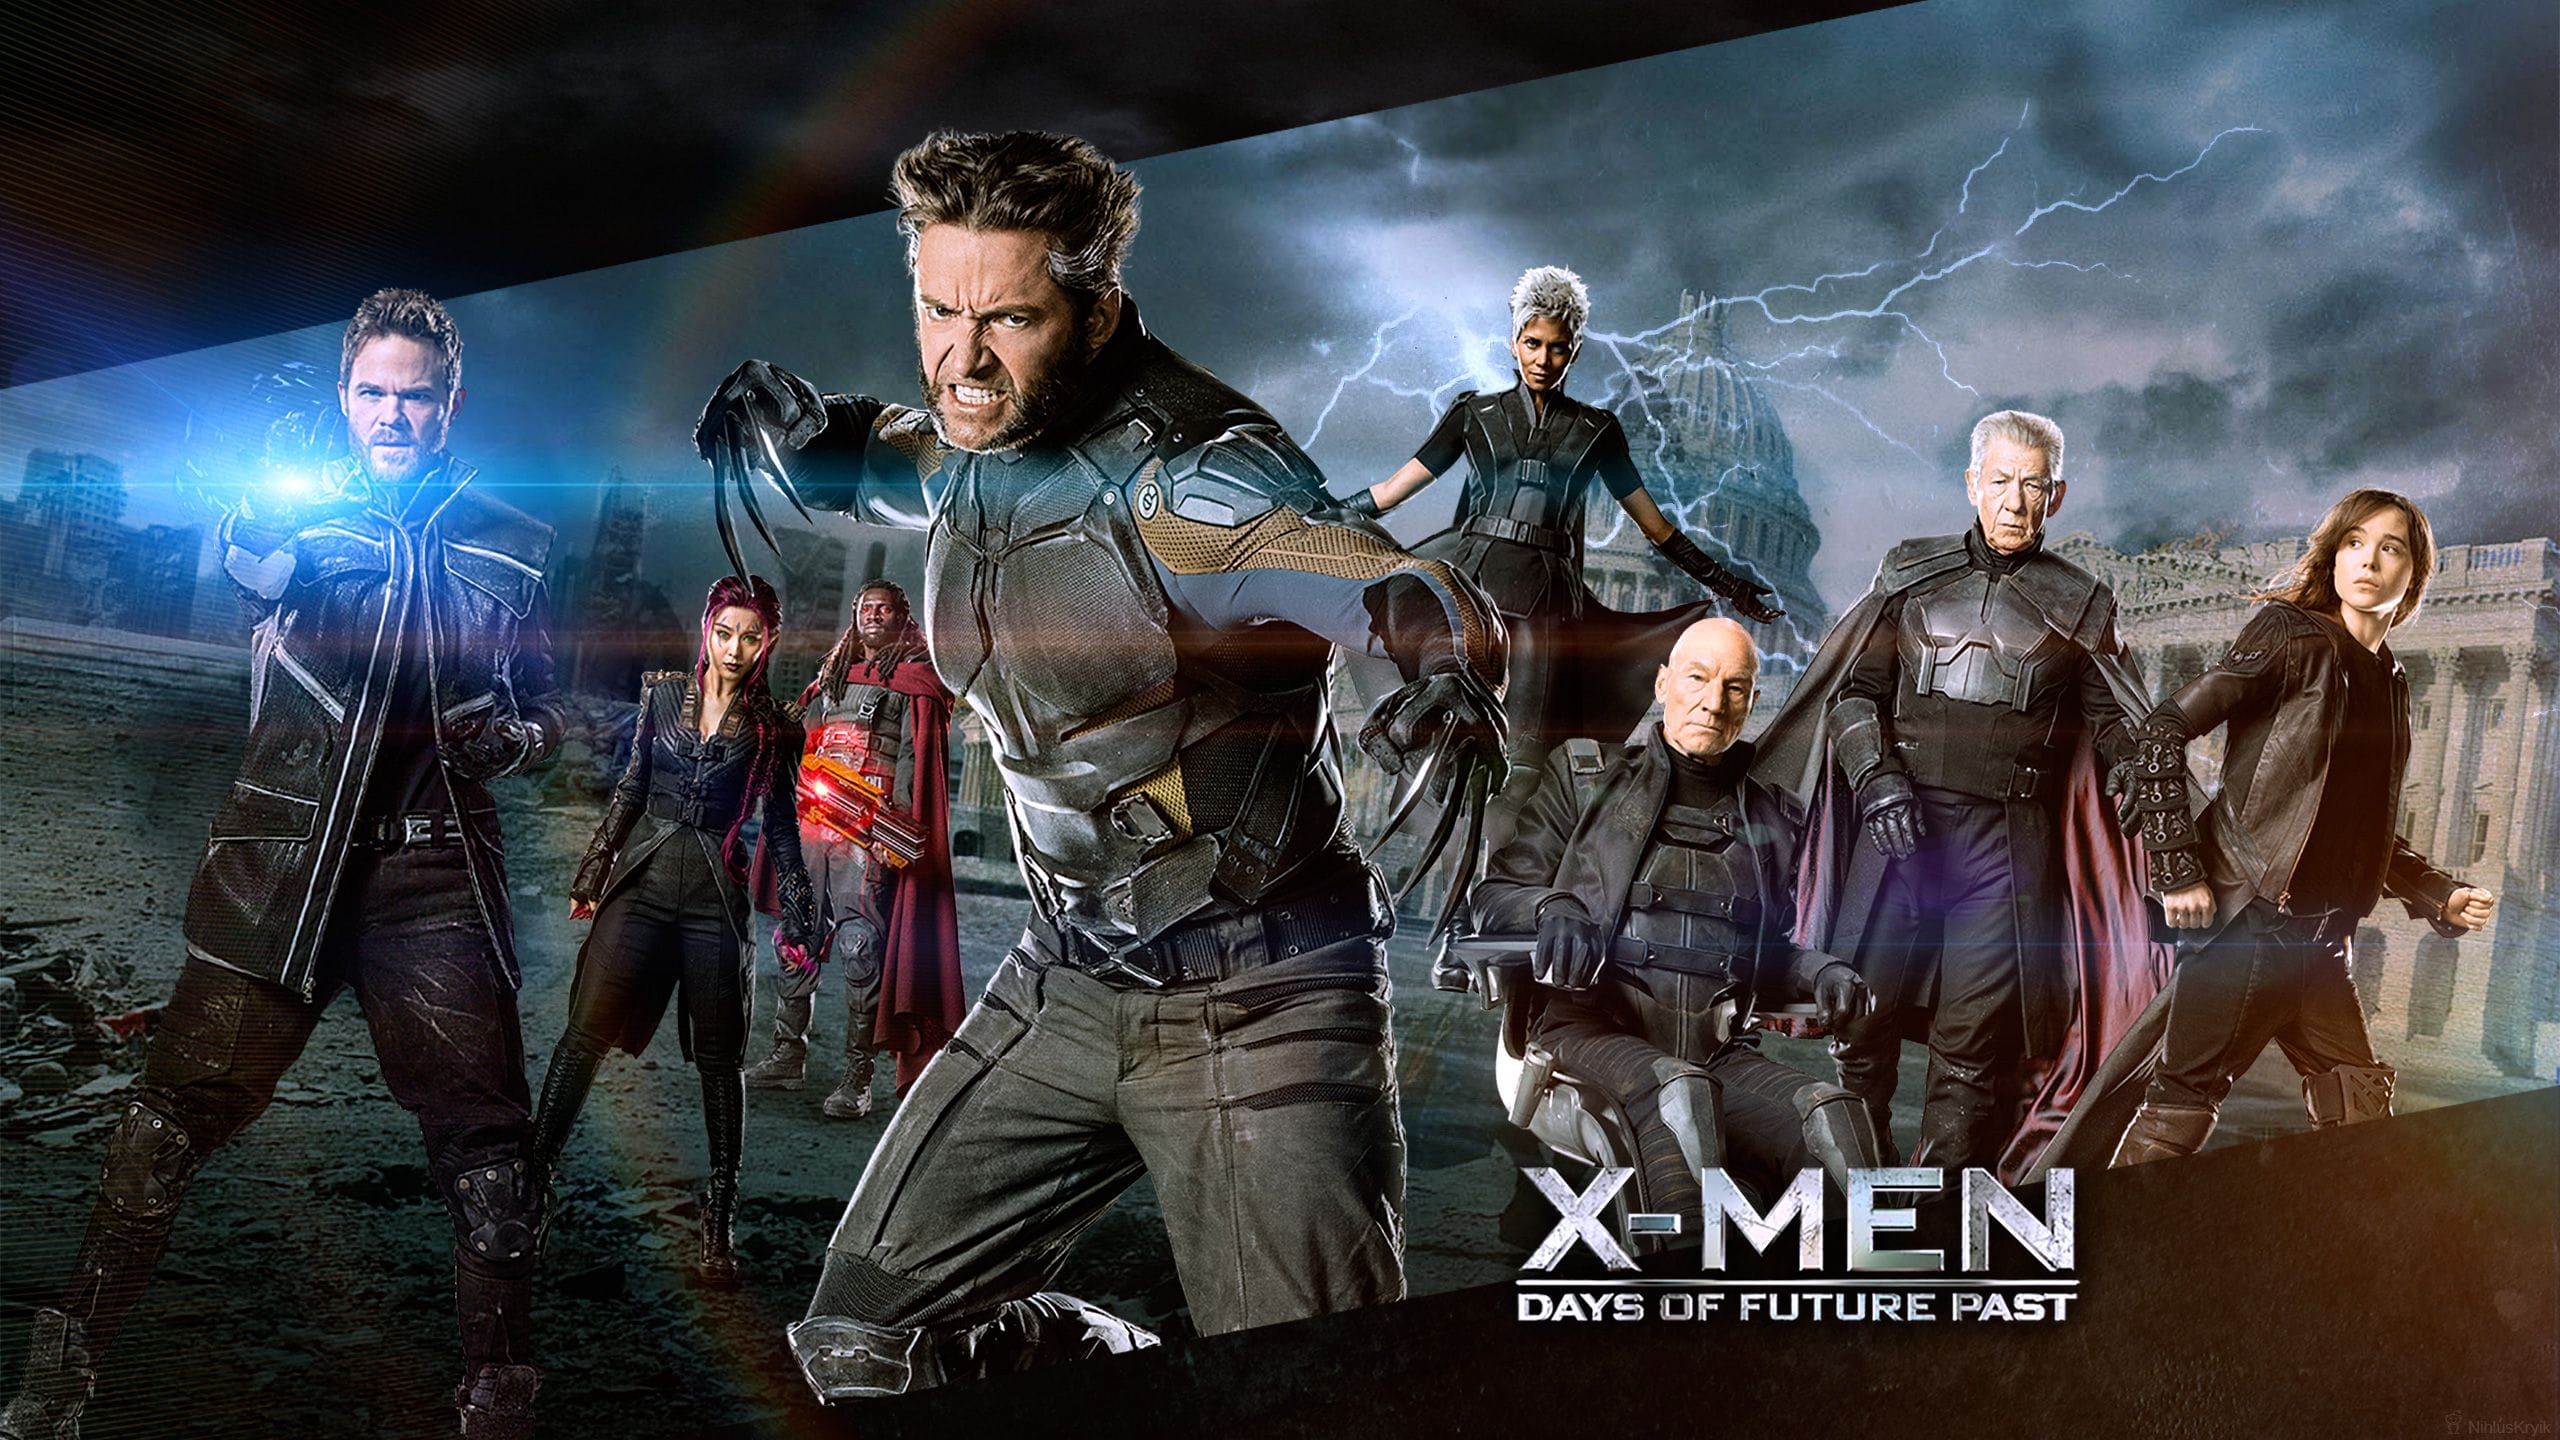 X-Men: Days Of Future Past HQ wallpapers